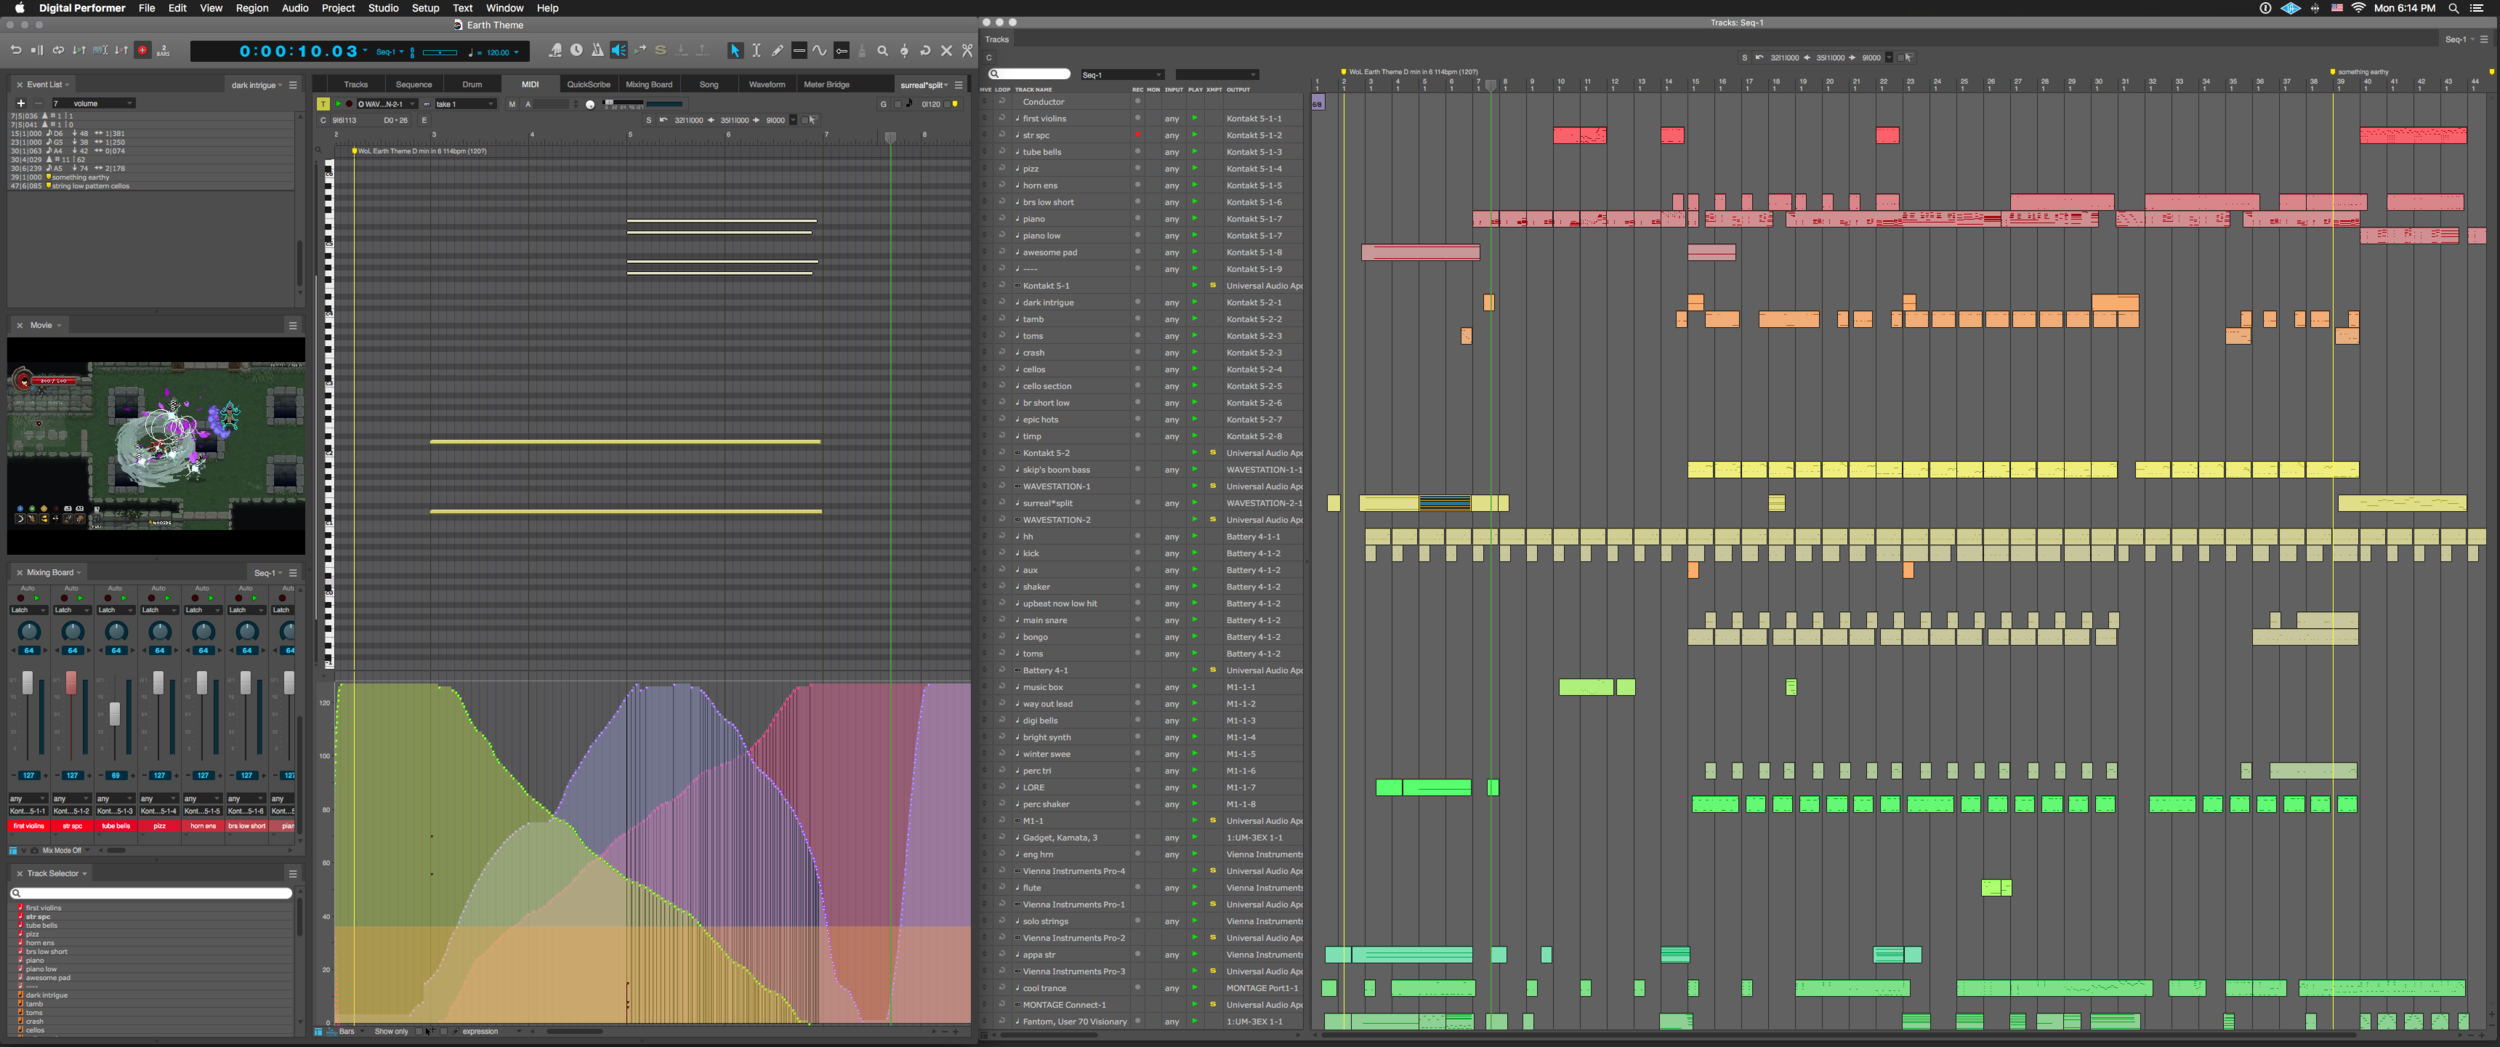 Here's a peek at an early version of the earth theme session.